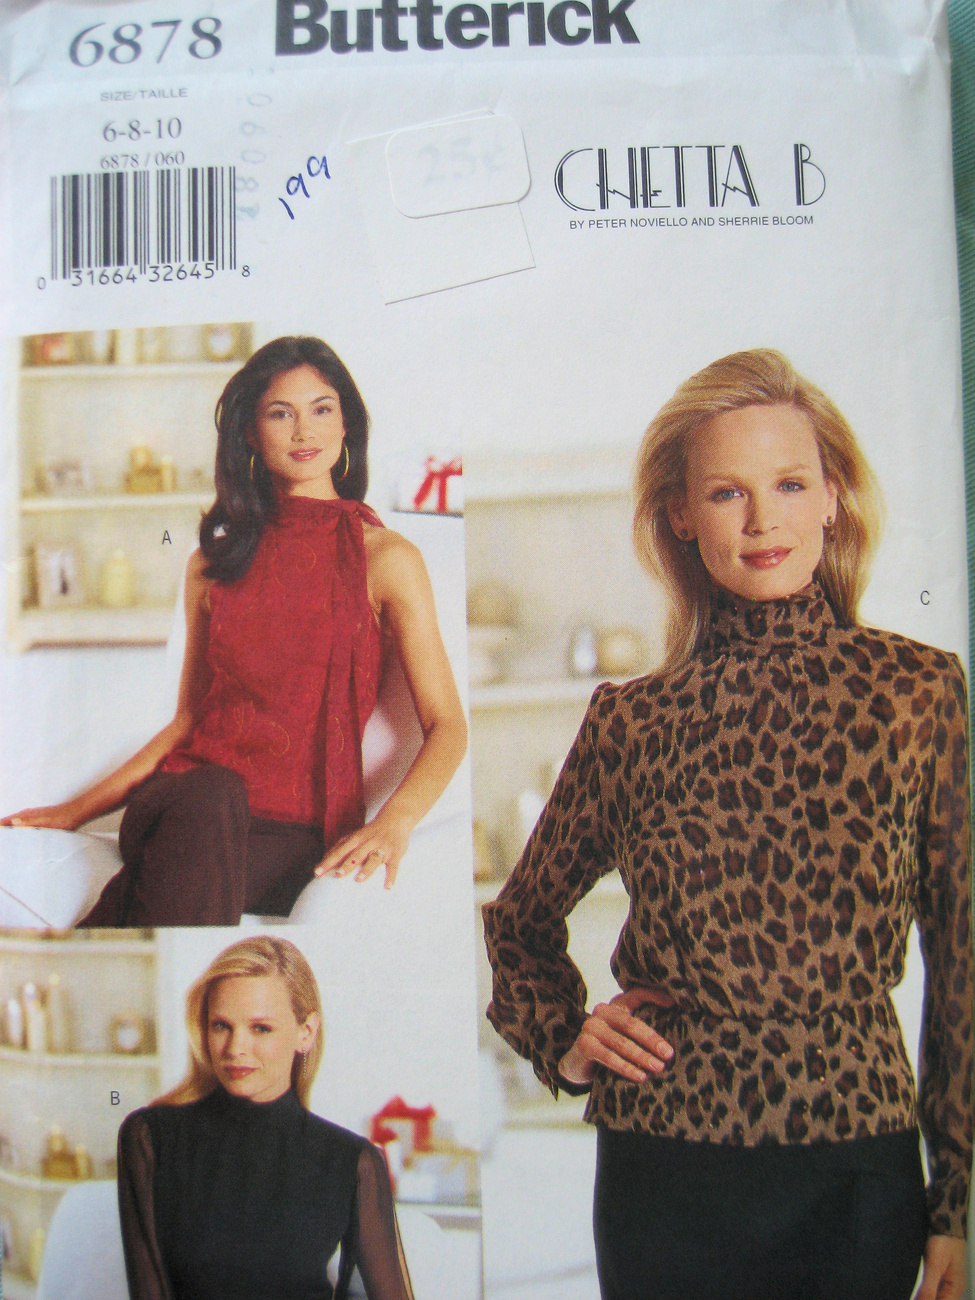 Butterick 6878 New Sewing Womans Size 6 to10 Jersy Blouse Pattern Butterick